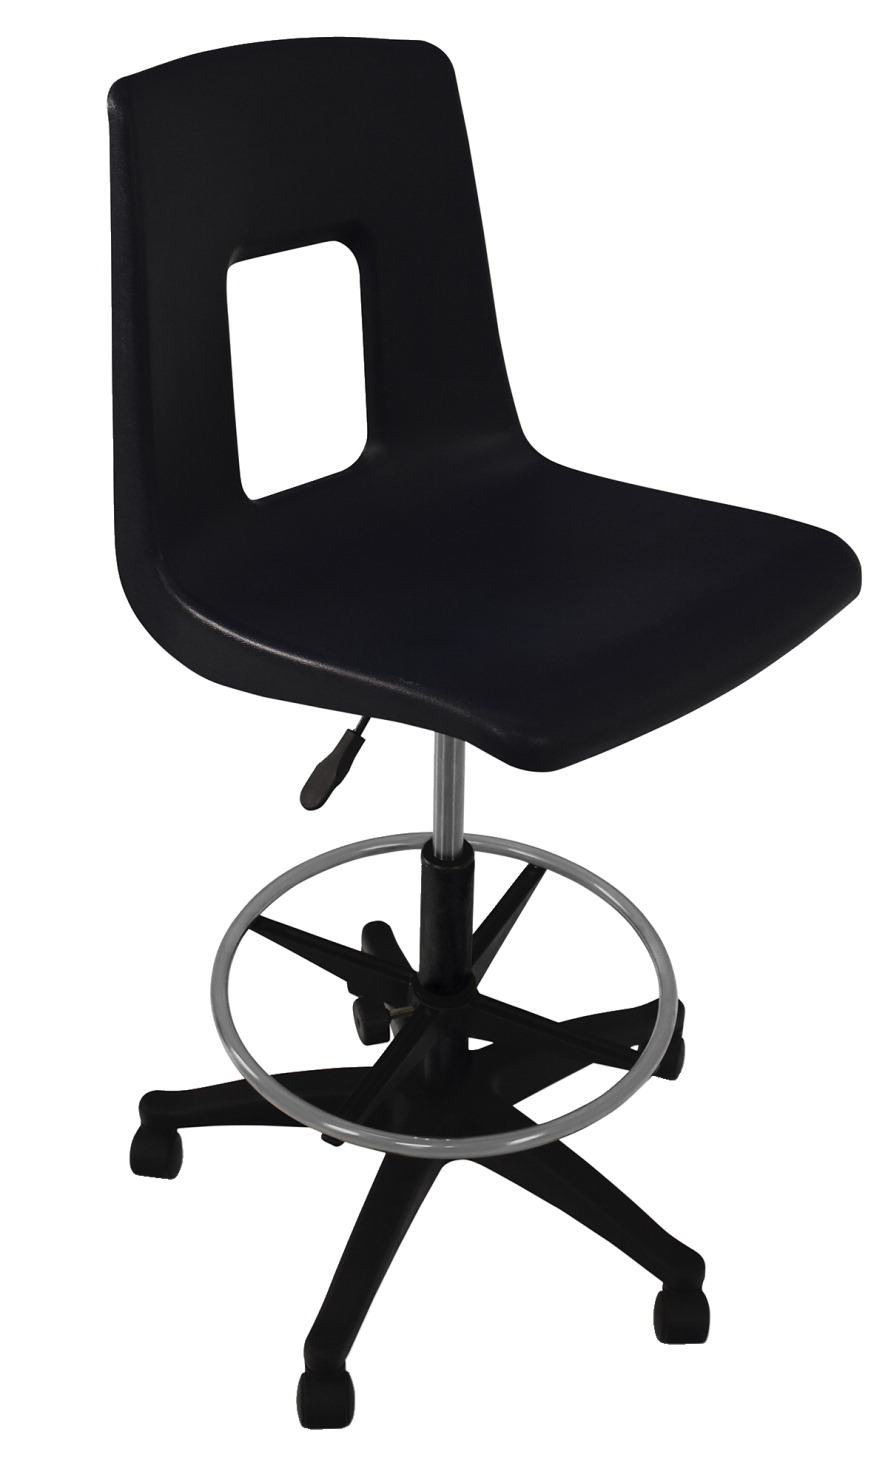 Classroom Select Traditional Pneumatic Lift Chair with Adjustable Foot Ring, A Shell, Various Options